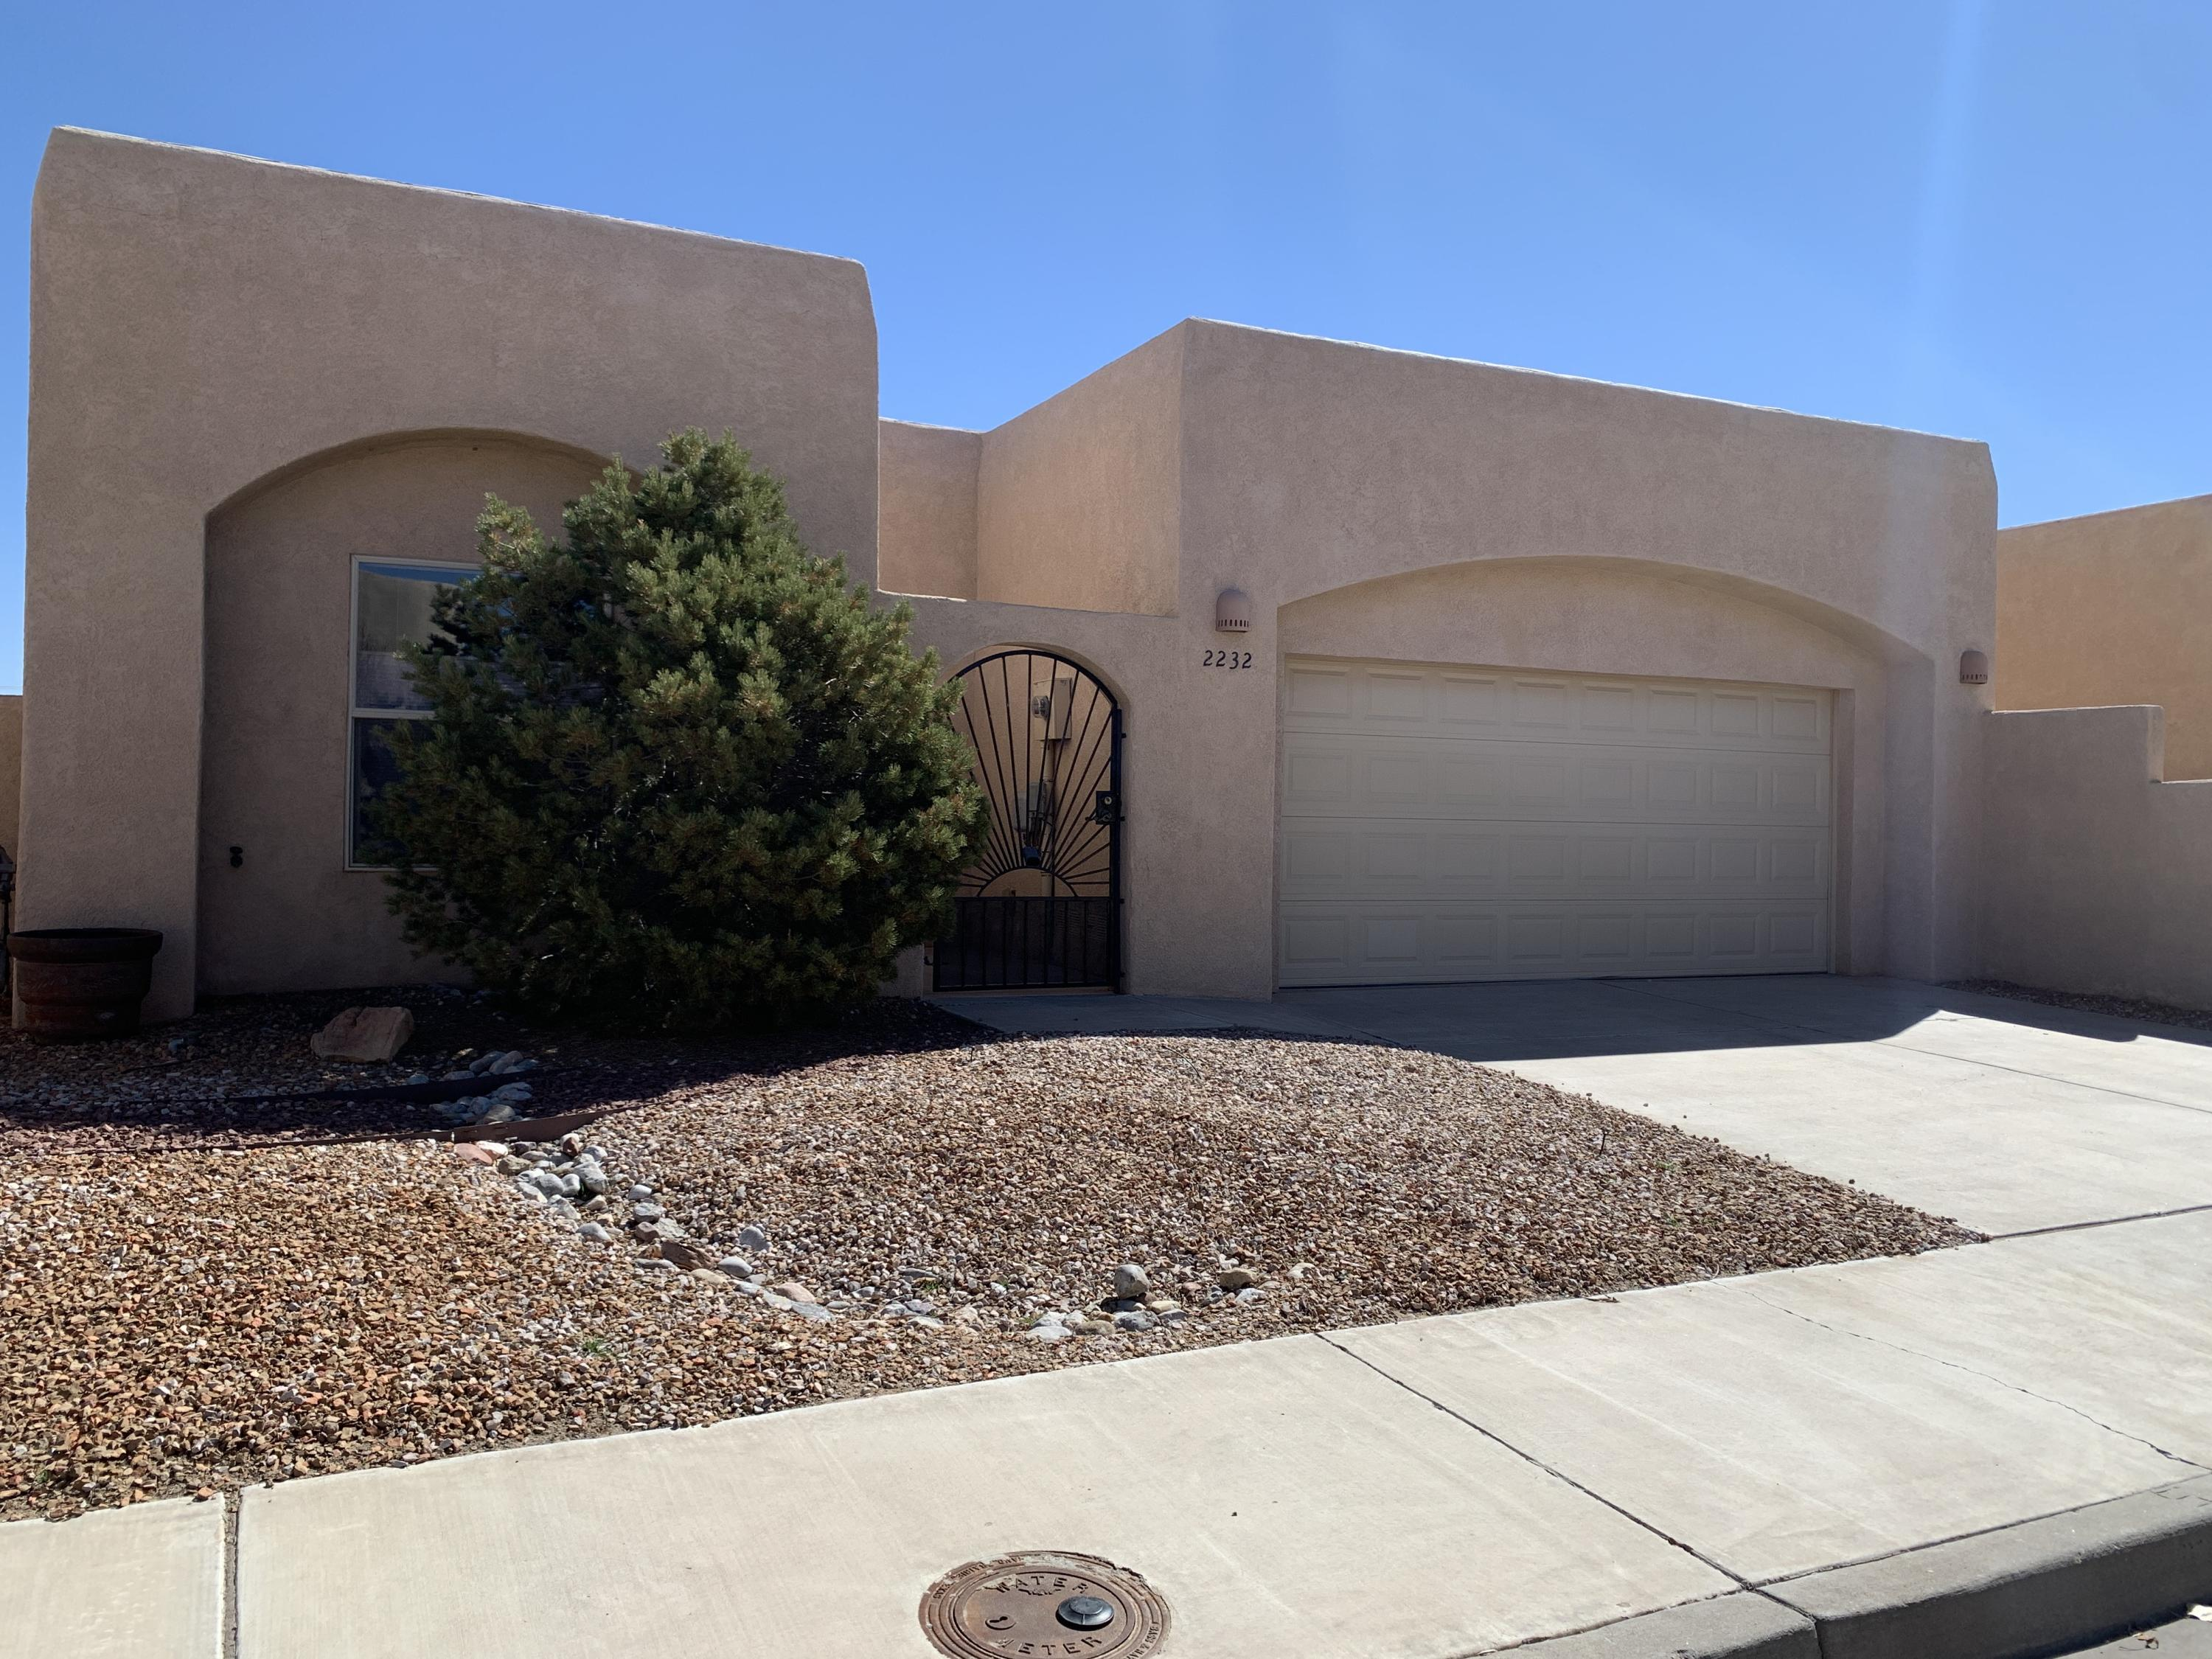 Well cared for lovely home in gated community near I-25 in Los Lunas. Single Story, custom pueblo sports 3 bedrooms, two full baths, spacious kitchen and living areas with high ceilings and covered patio. Skylights in both the kitchen and the master closet add light throughout! Recent updates include Safe Step walk-in jetted tub in the owner's suite, refrigerated air and heat unit installed in 2019, new roof installed 2016, and 50 gallon water heater installed 2020! Enjoy the wonderfully private rear yard.  Home is move in ready!